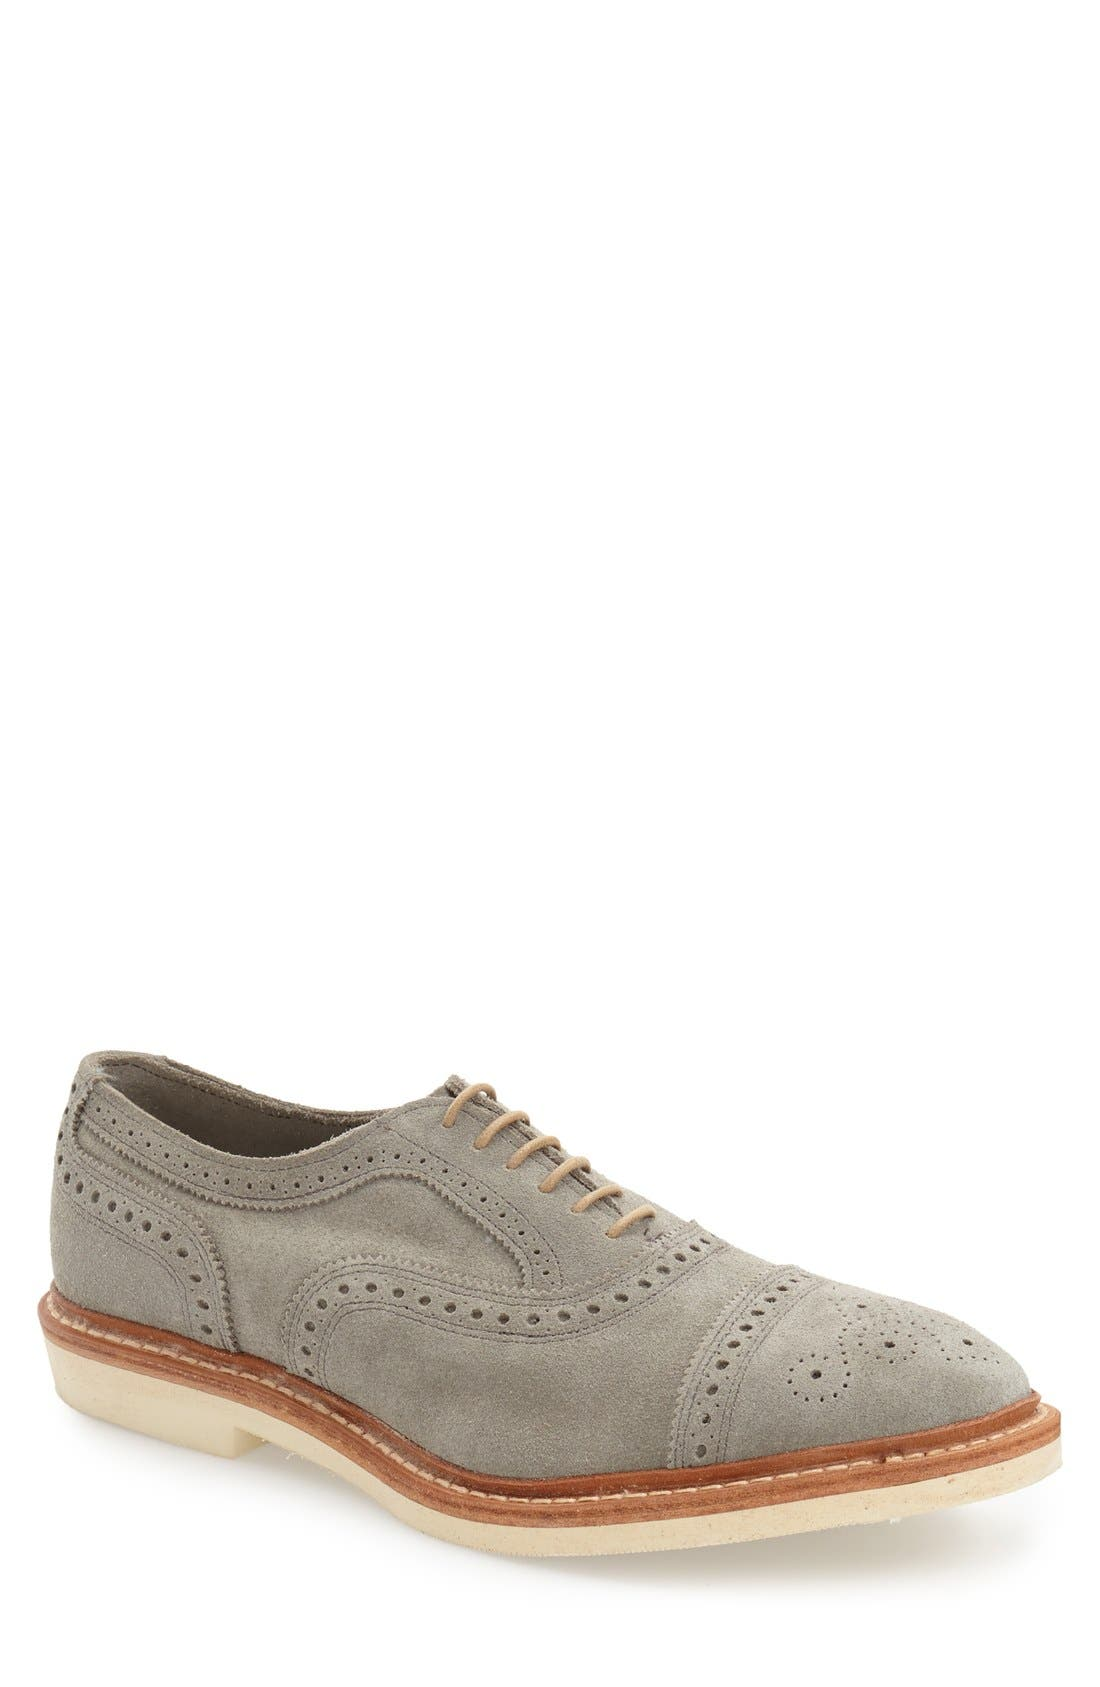 'Strandmok' Cap Toe Oxford,                         Main,                         color, Grey Suede